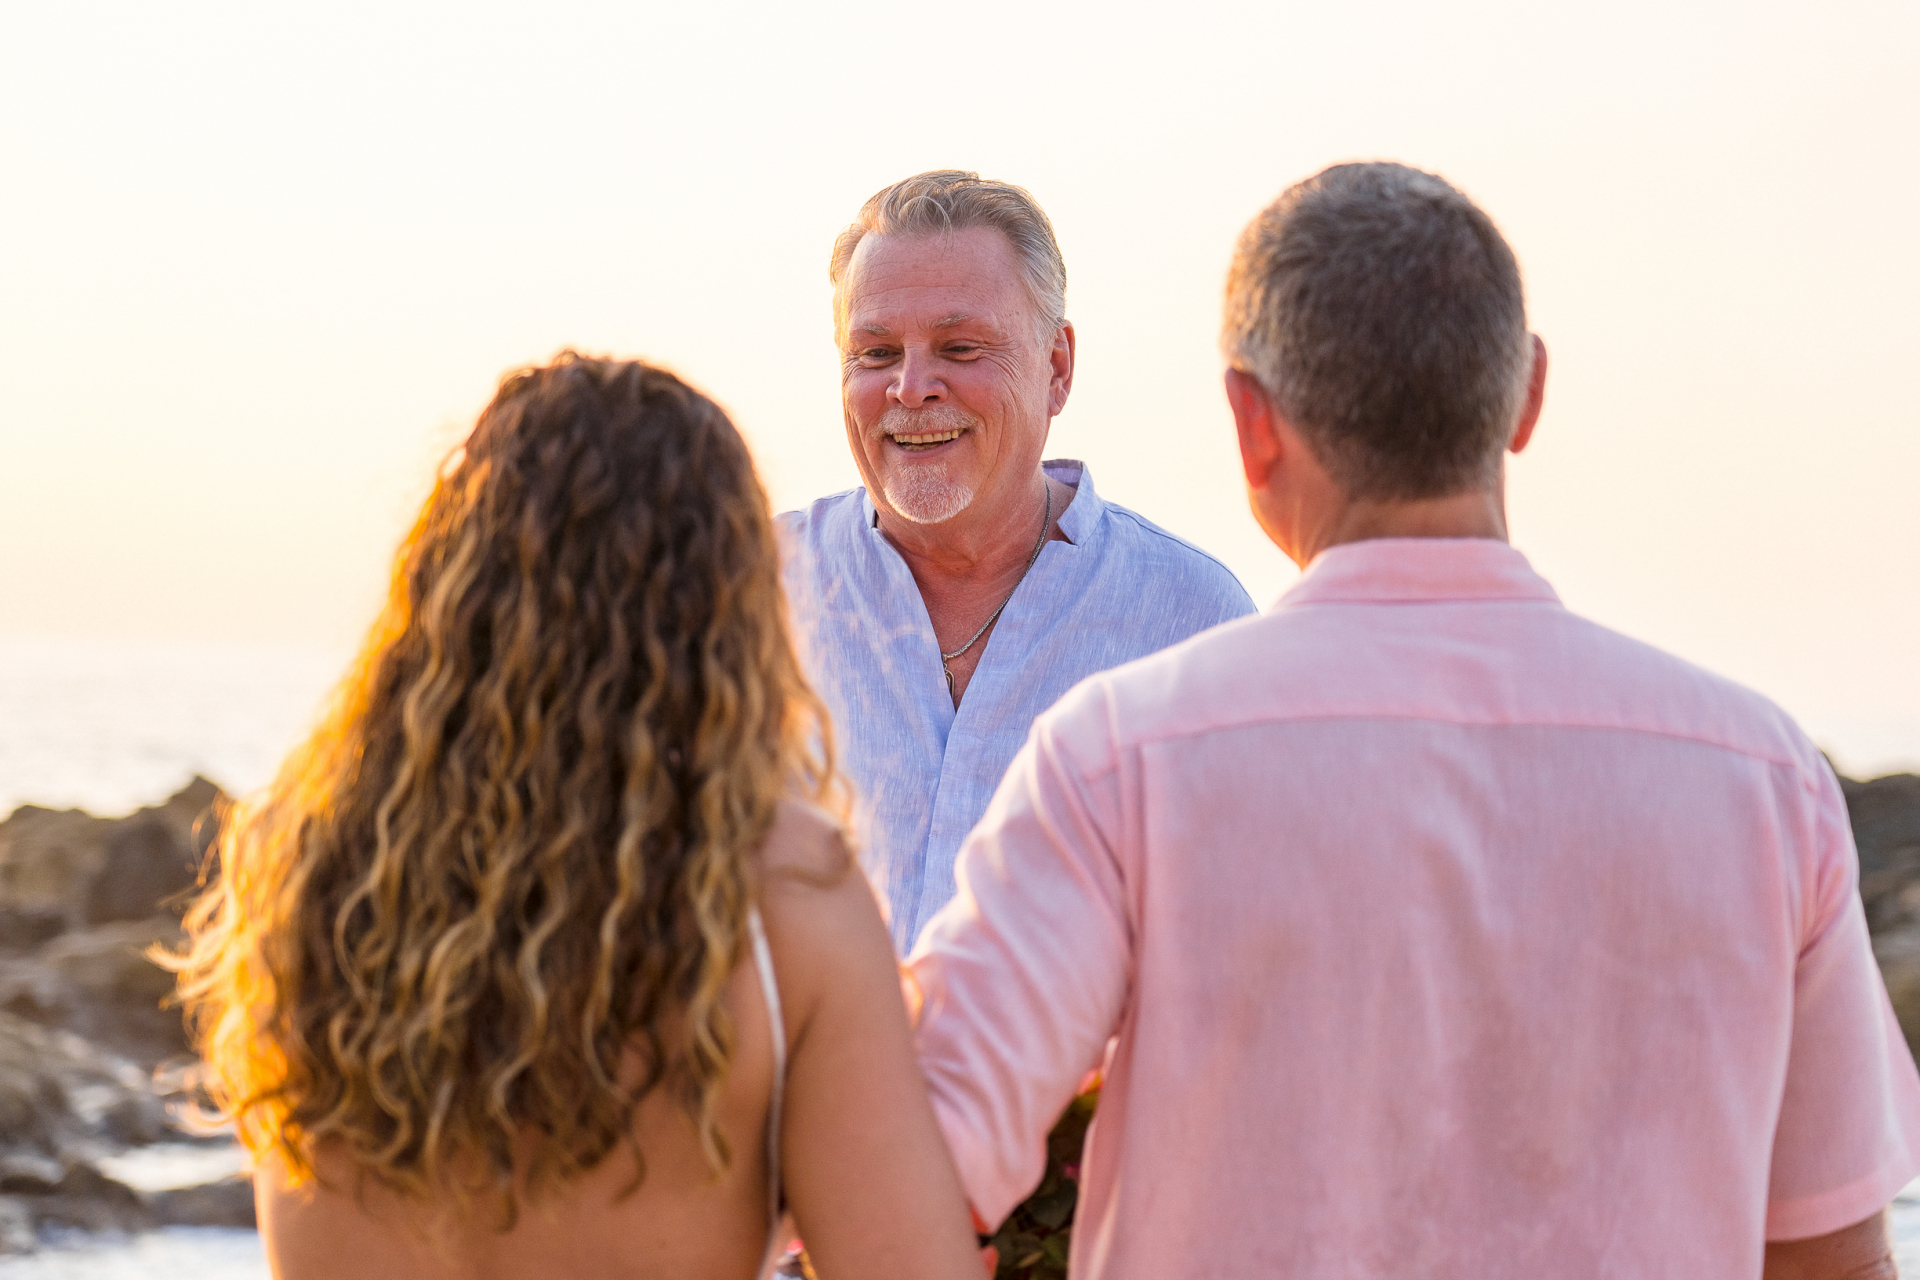 Playa Conchas Chinas, Mexico Beach Elopement Ceremony Photo | the groom is finally getting the chance to see his bride on their wedding day